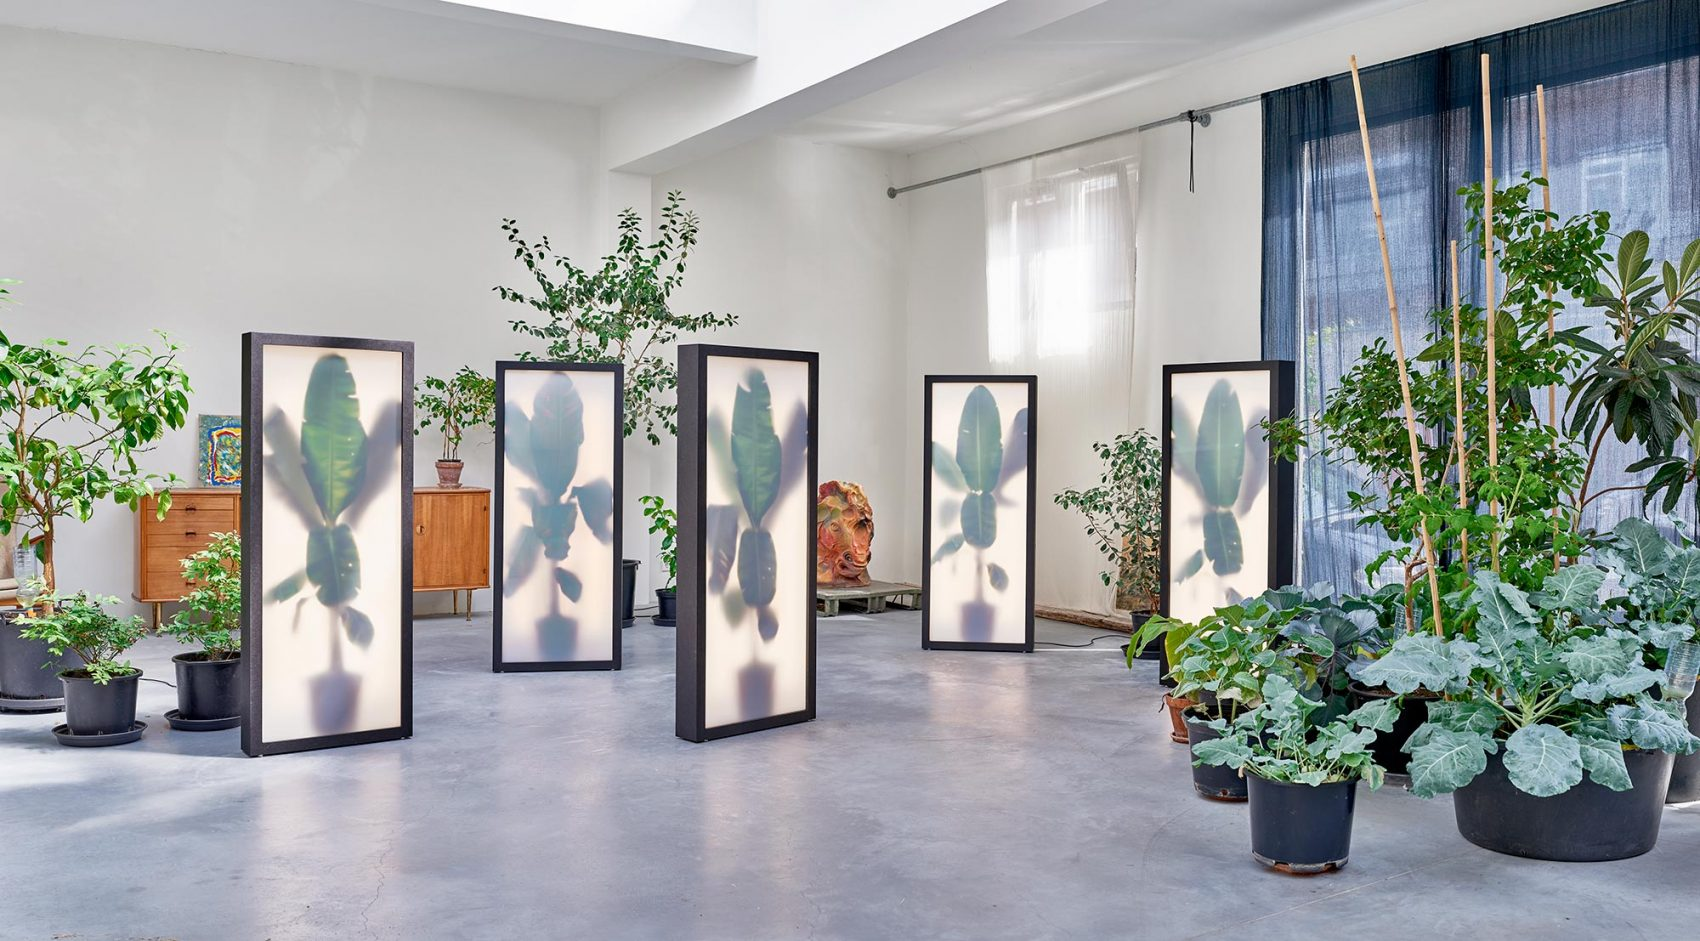 GROWING PLANTS INDOORS BY REM ATELIER